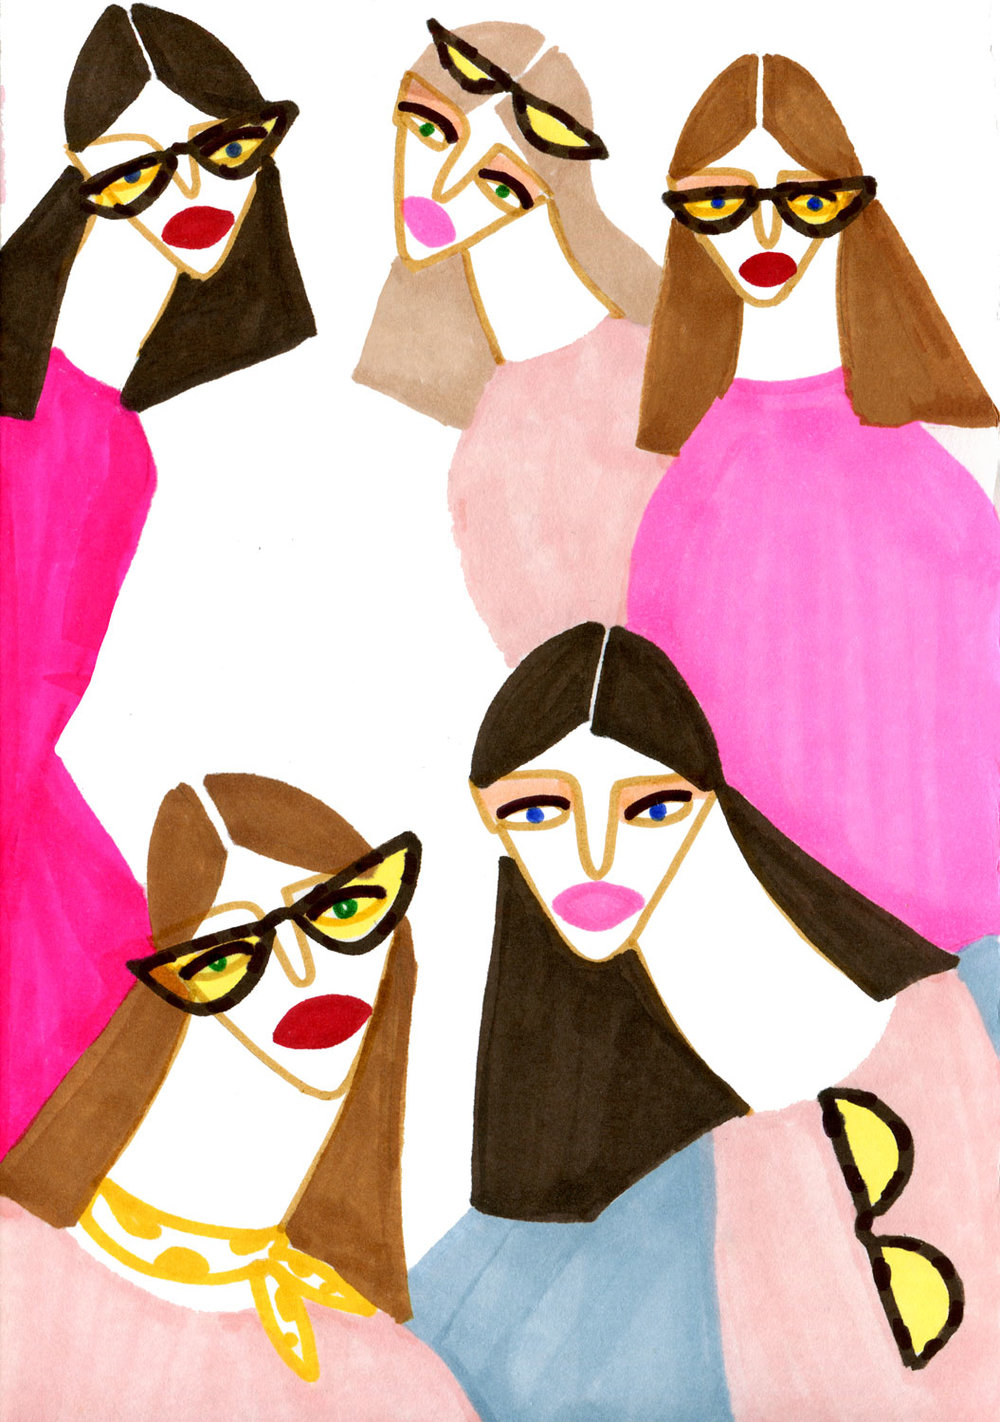 Artwork of Ladies featuring Stylish shades